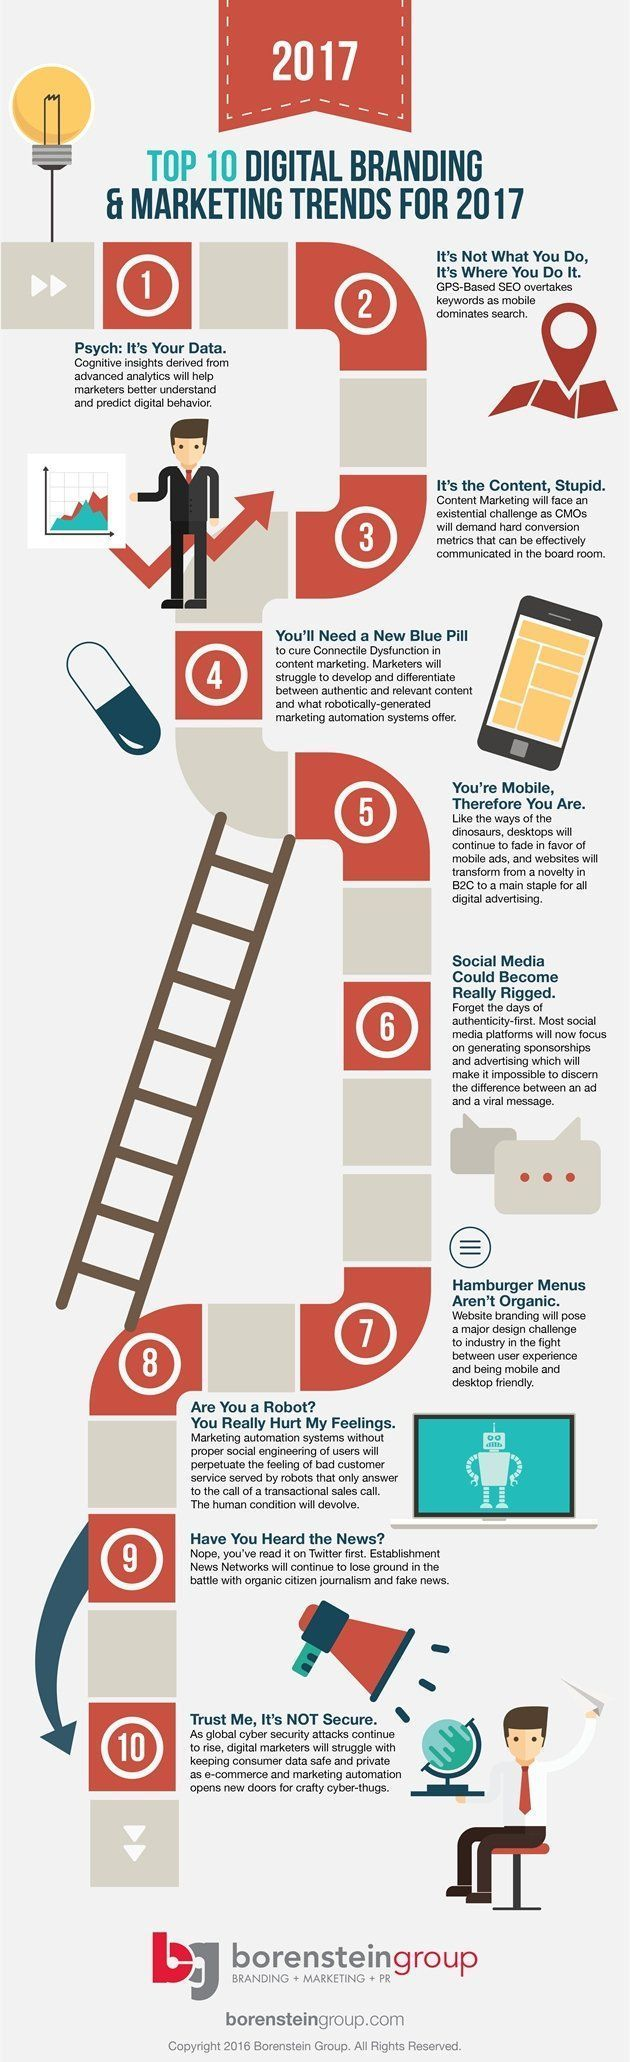 Marketing Strategy - 2017's Top 10 Digital Branding and Marketing Trends : MarketingProfs Article. Find more stuff: dynamicwebmarketingsecrets.com